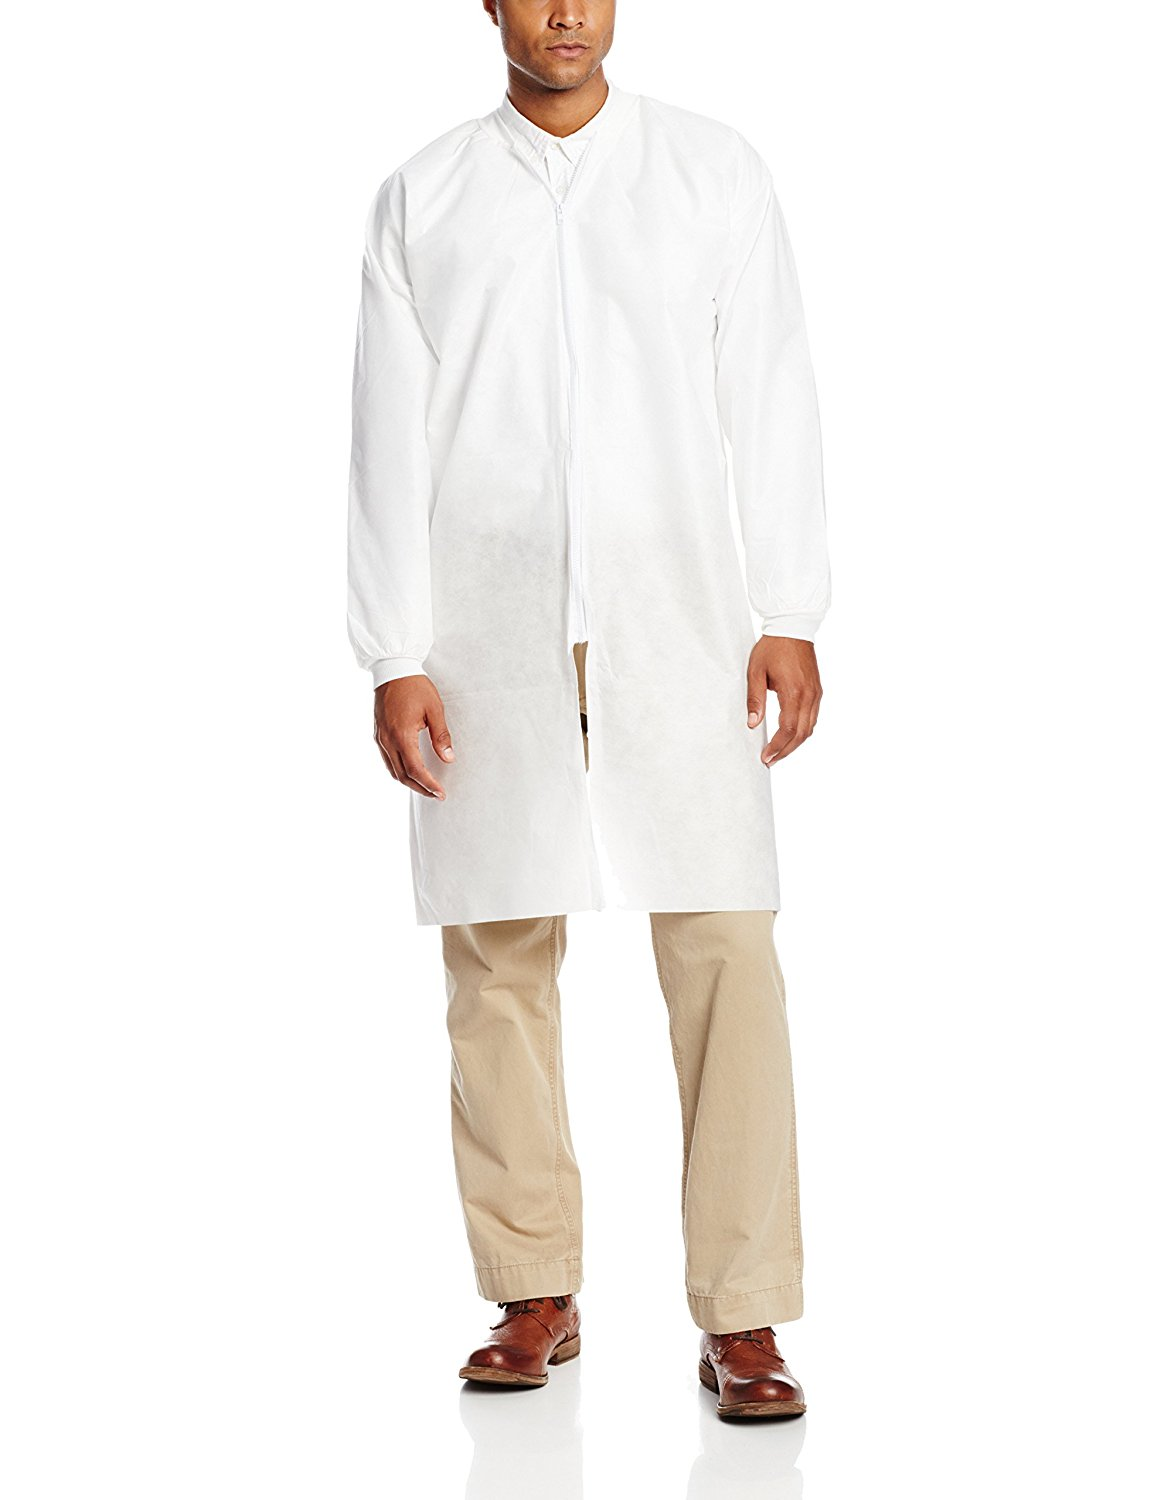 ValuMax NPZ3660WH2XL Zipper Front, No Pocket, Extra-Safe, Wrinkle-Free, Disposable SMS Knee Length Lab Coats, White, 2XL, Pack of 10